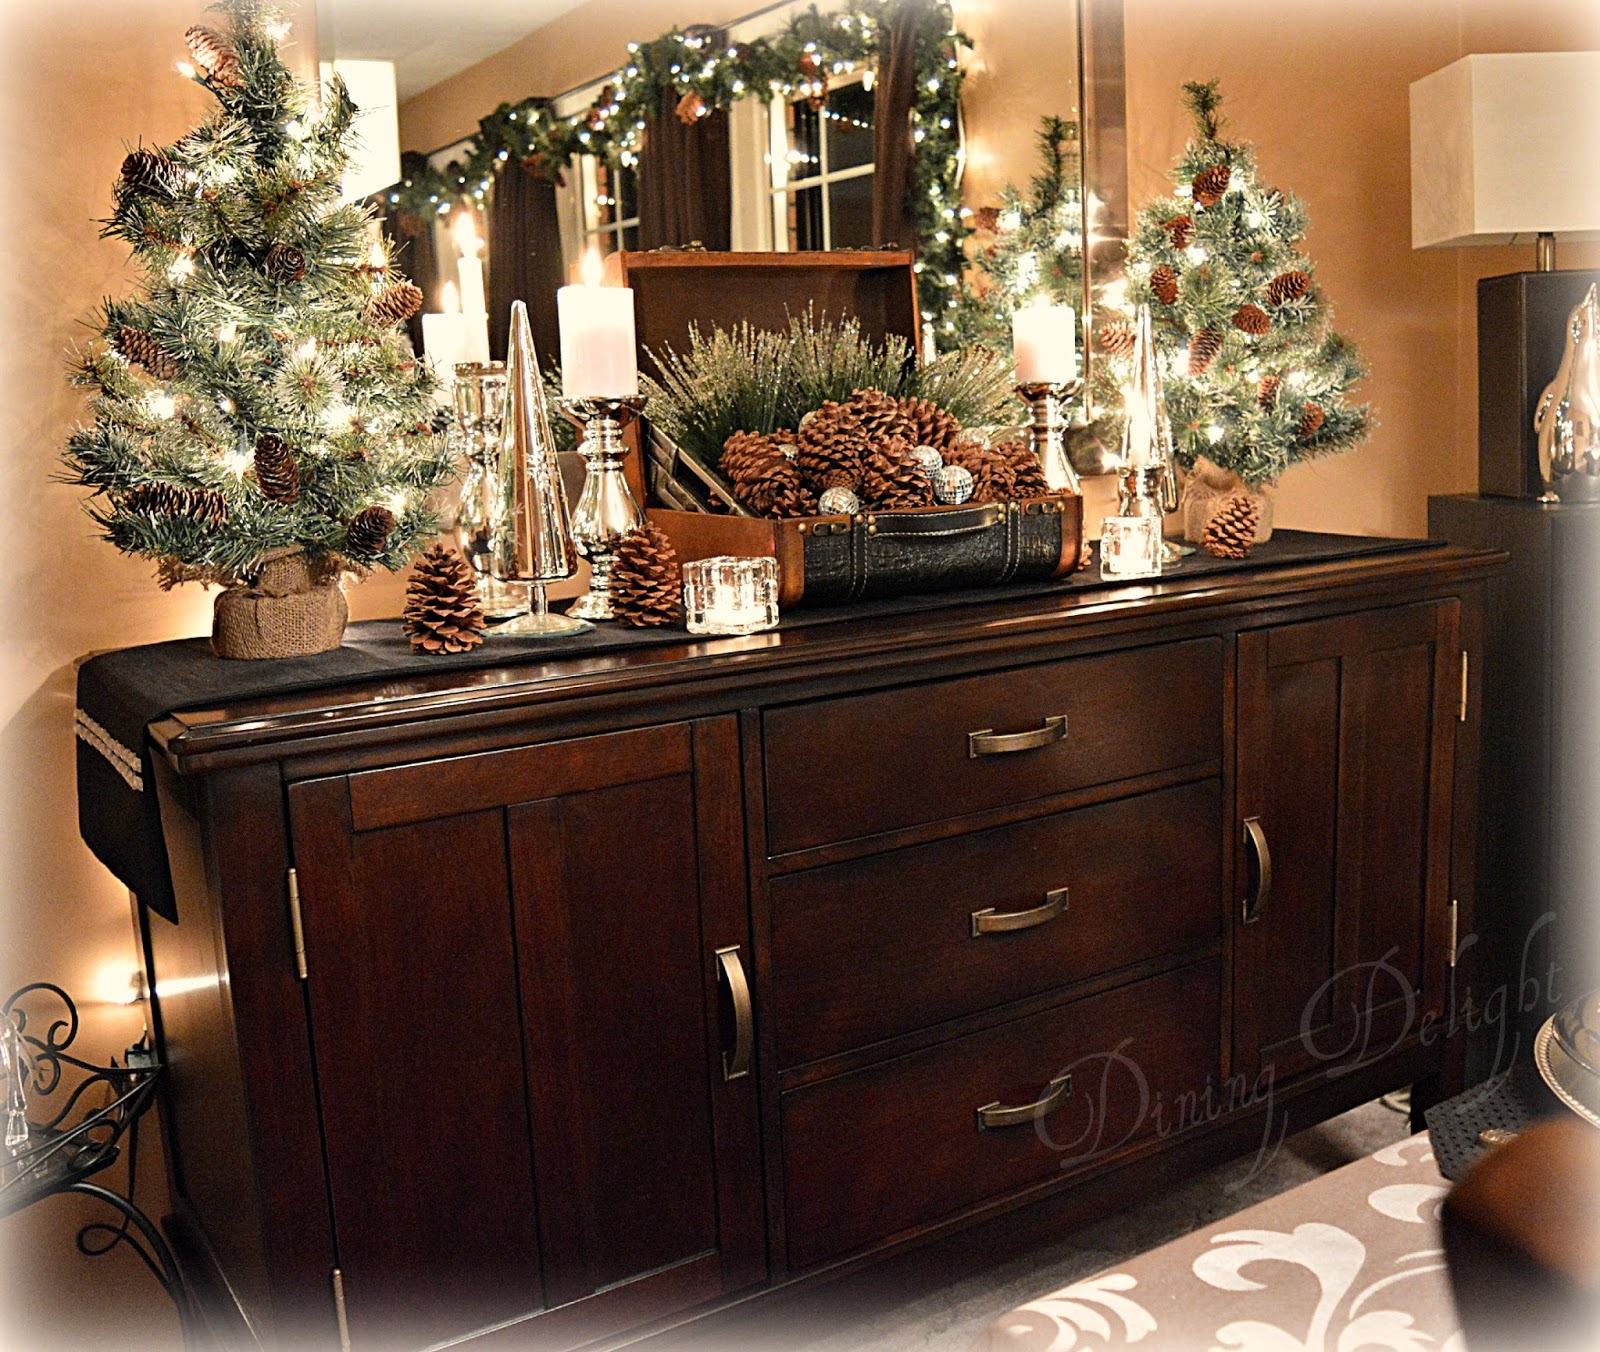 Dining Delight Pine Cones Candles For Christmas